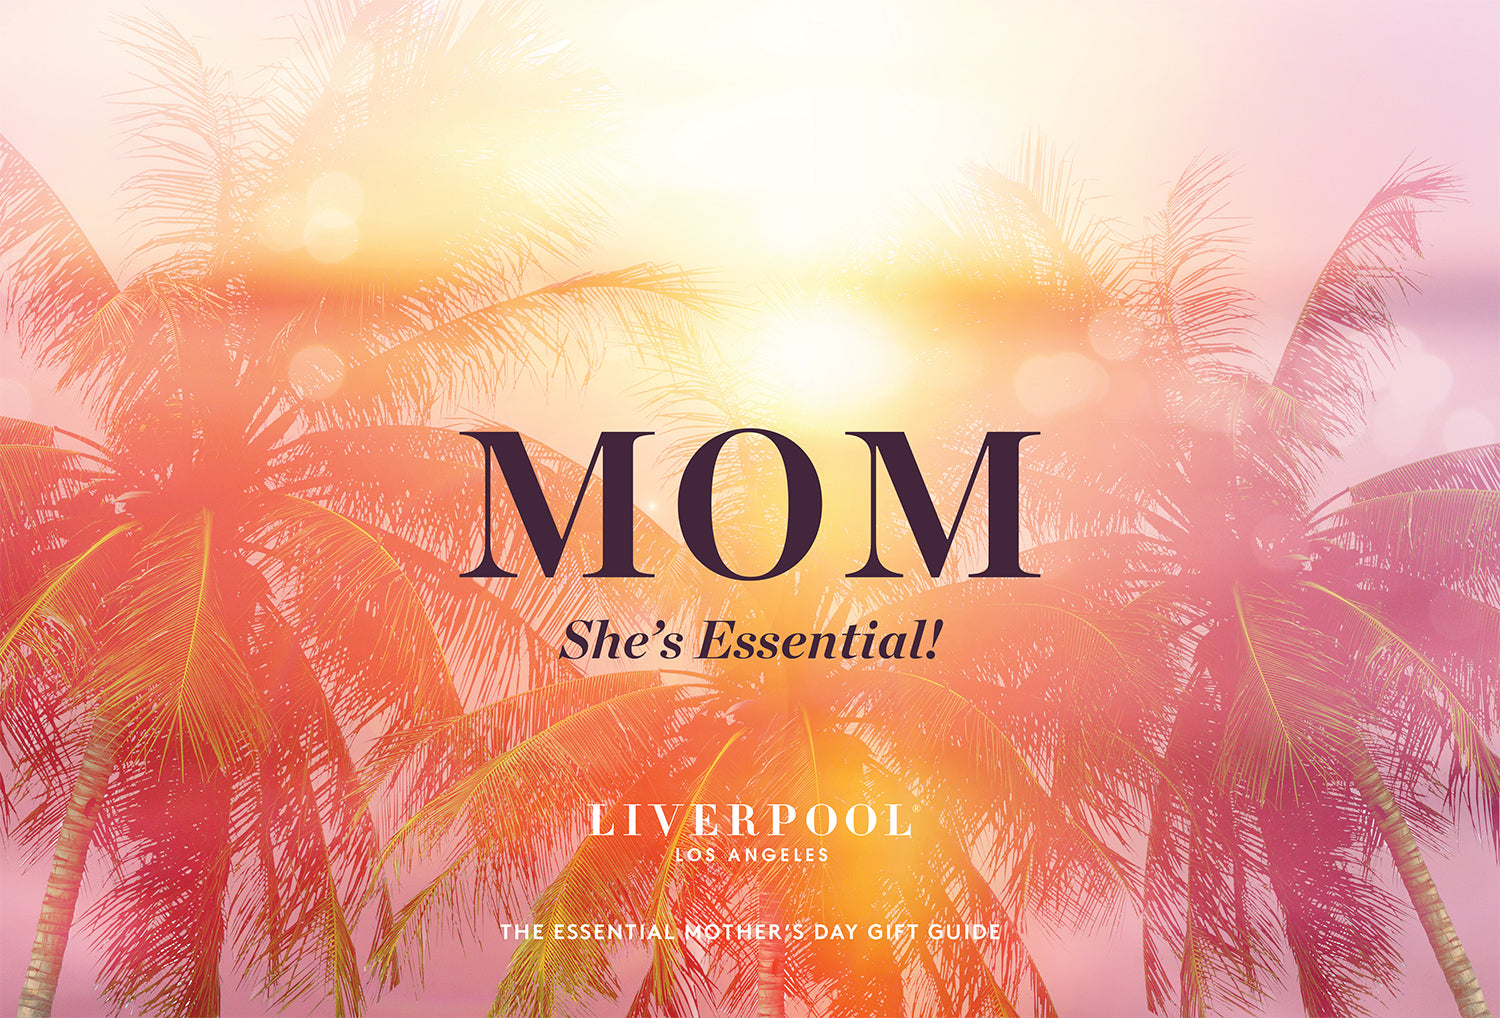 Shop the Liverpool Los Angeles Essential Mother's Day Gift Guide: She's Essential!